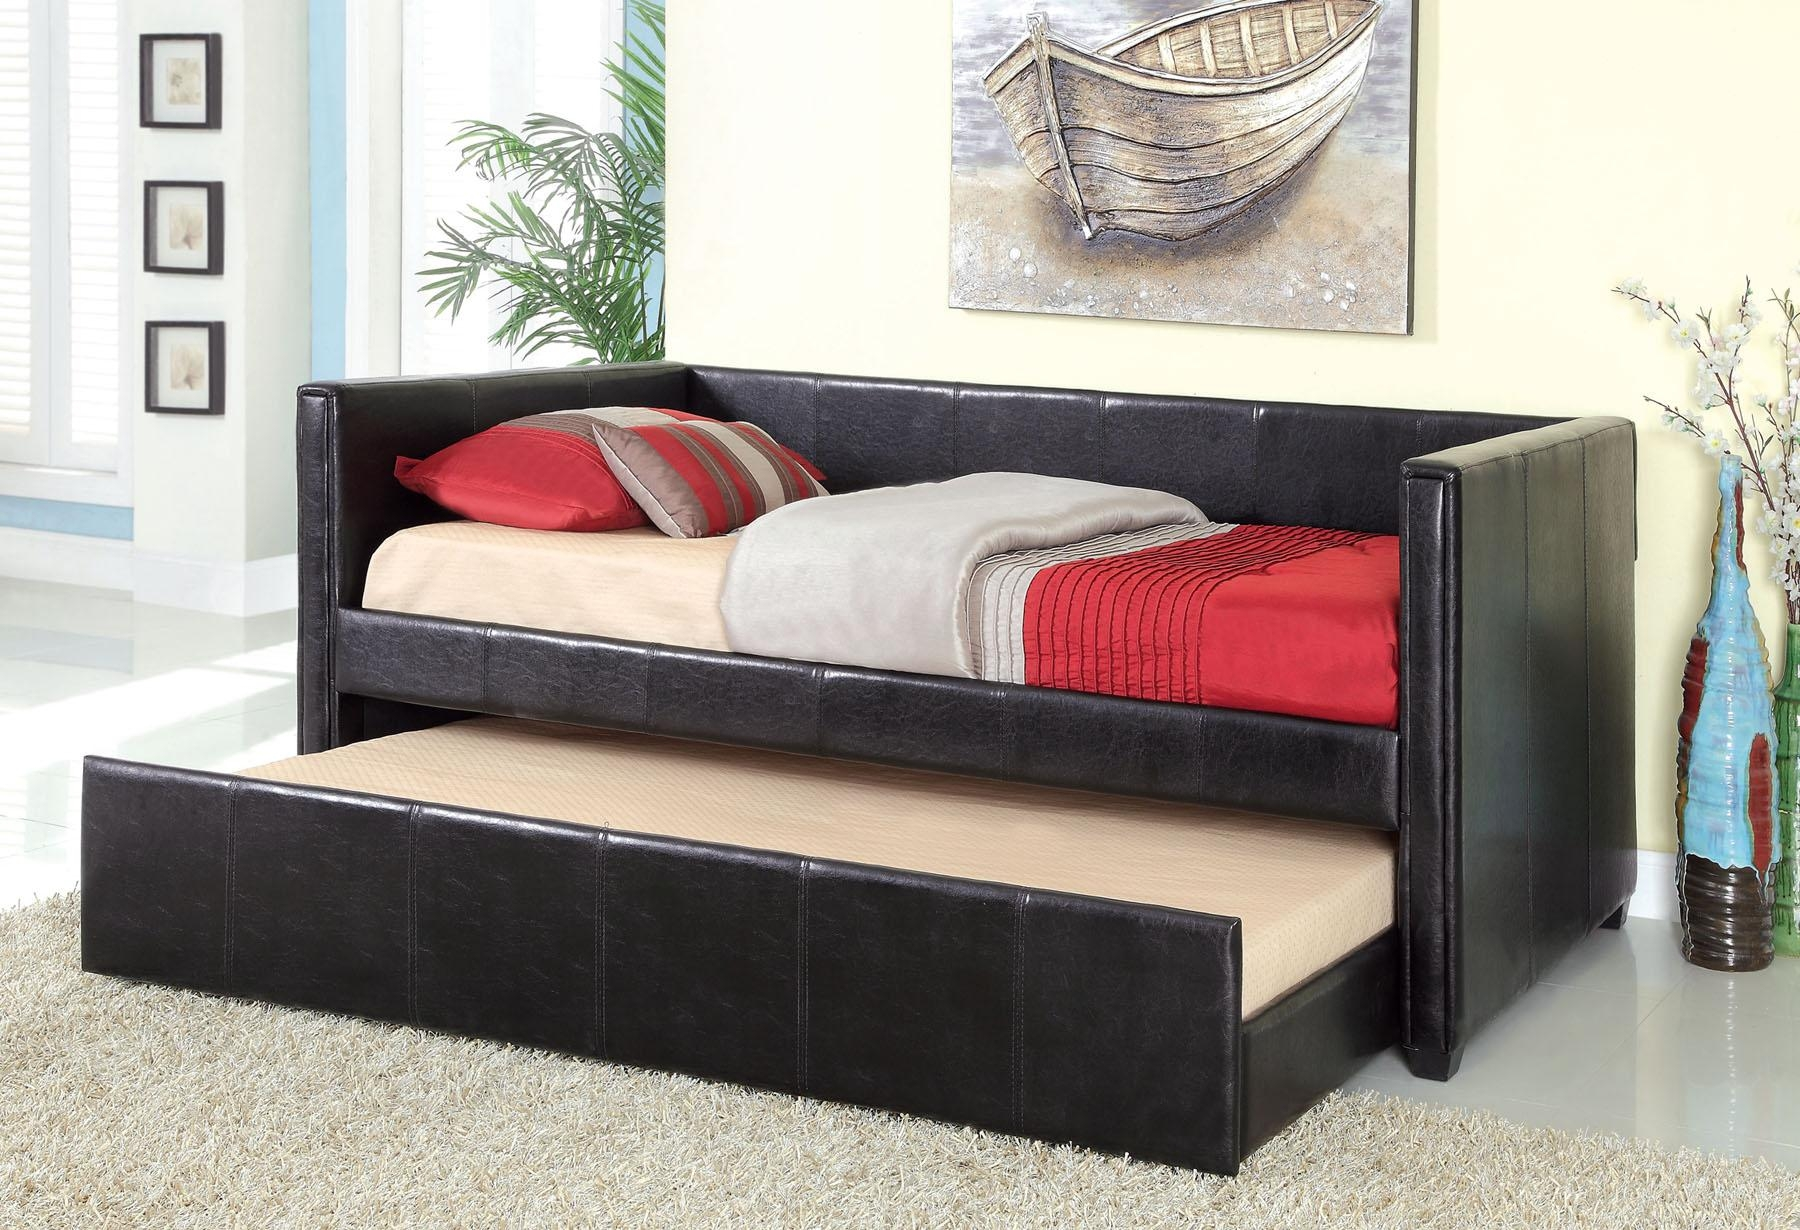 Beds For Sofa Beds With Trundle (Image 5 of 20)